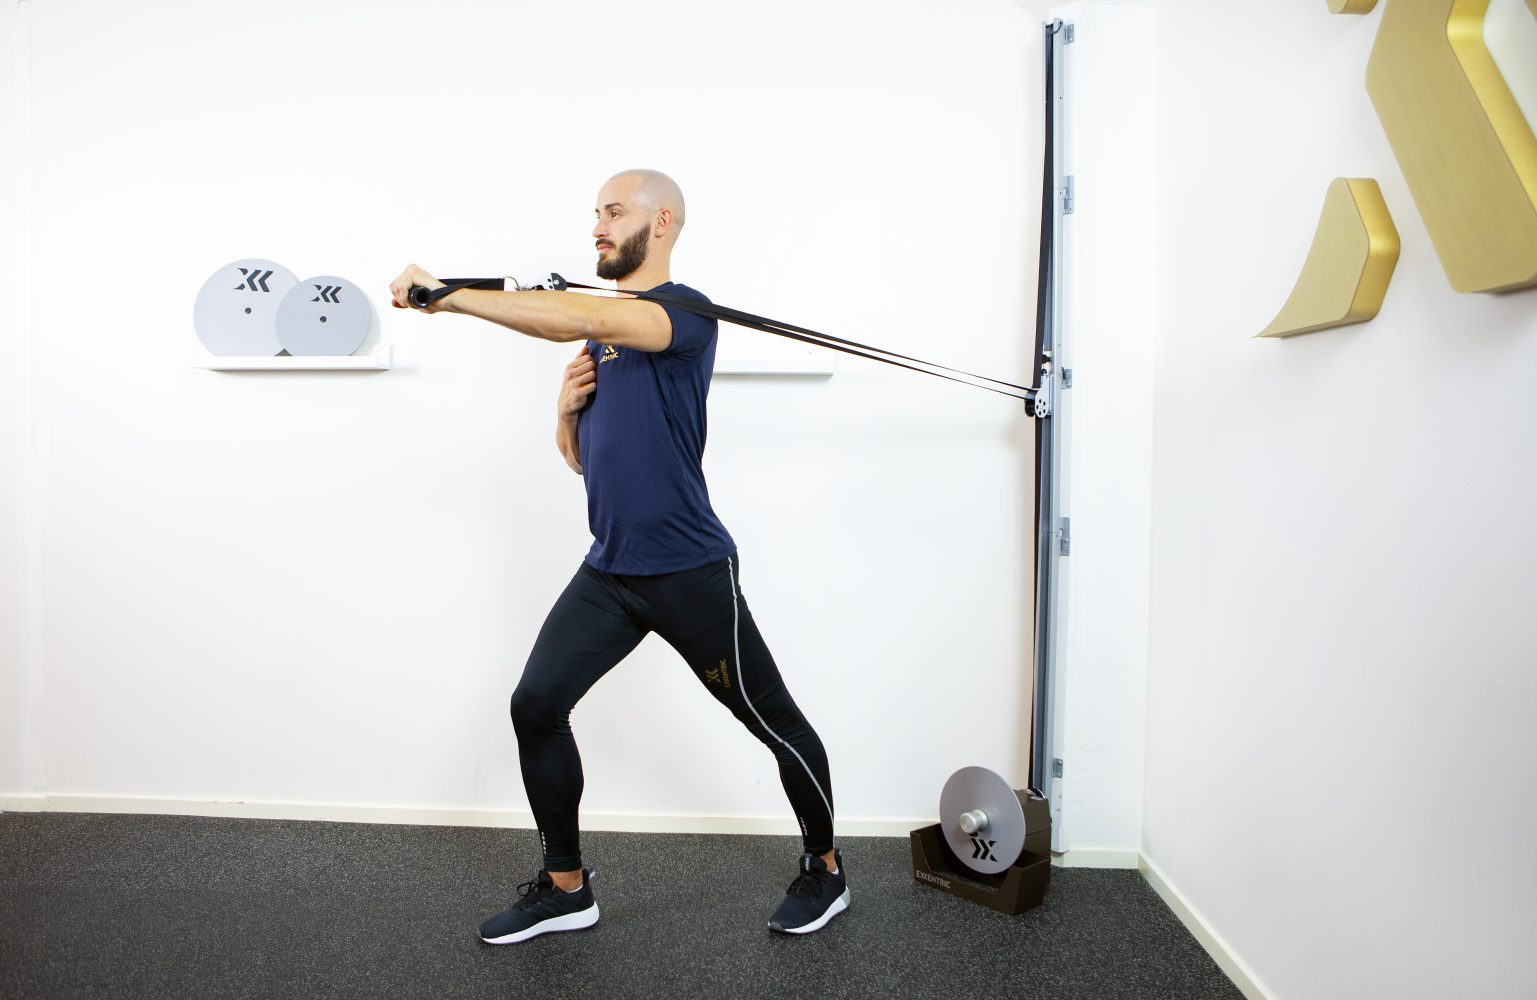 Exercises with kPulley